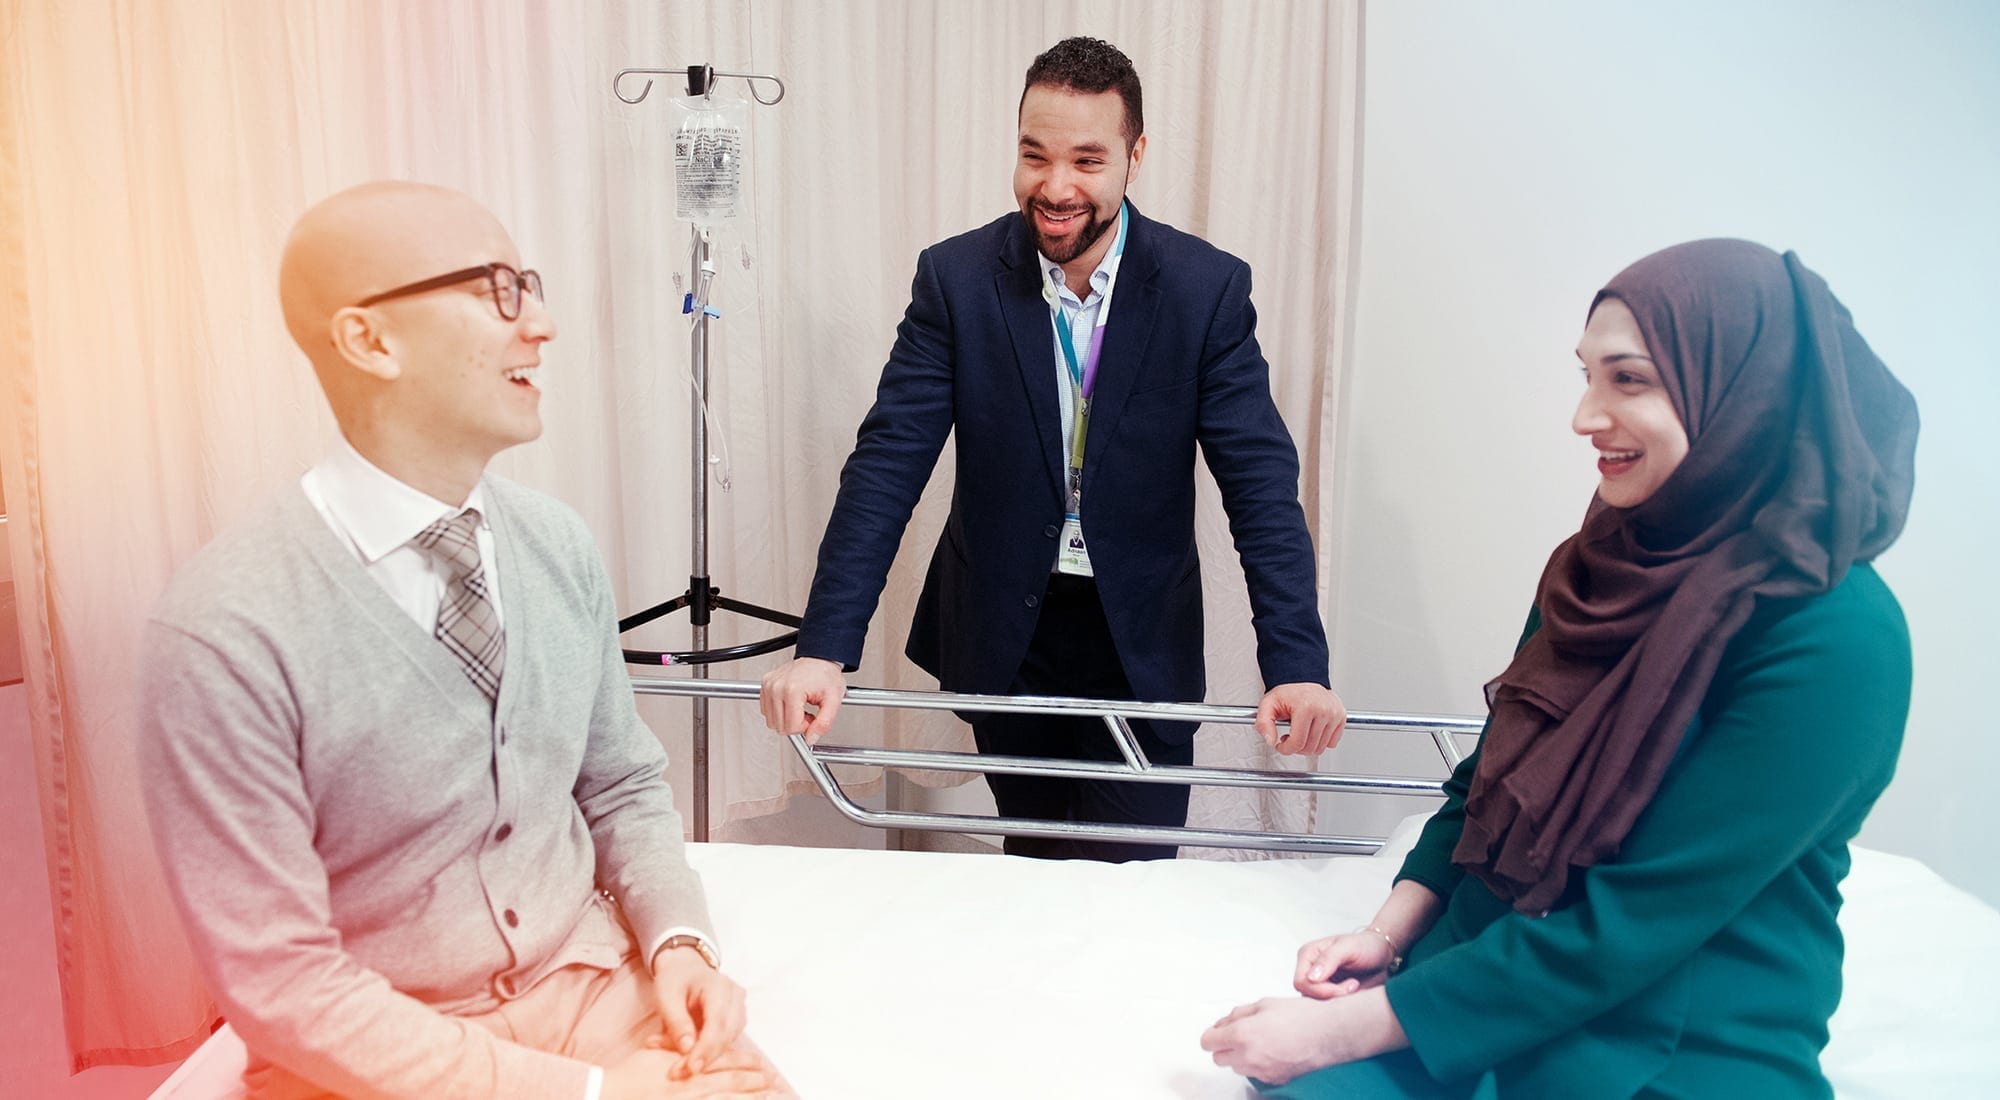 Could this fix problems inside hospitals? Entrepreneurs and administrators co-designing solutions